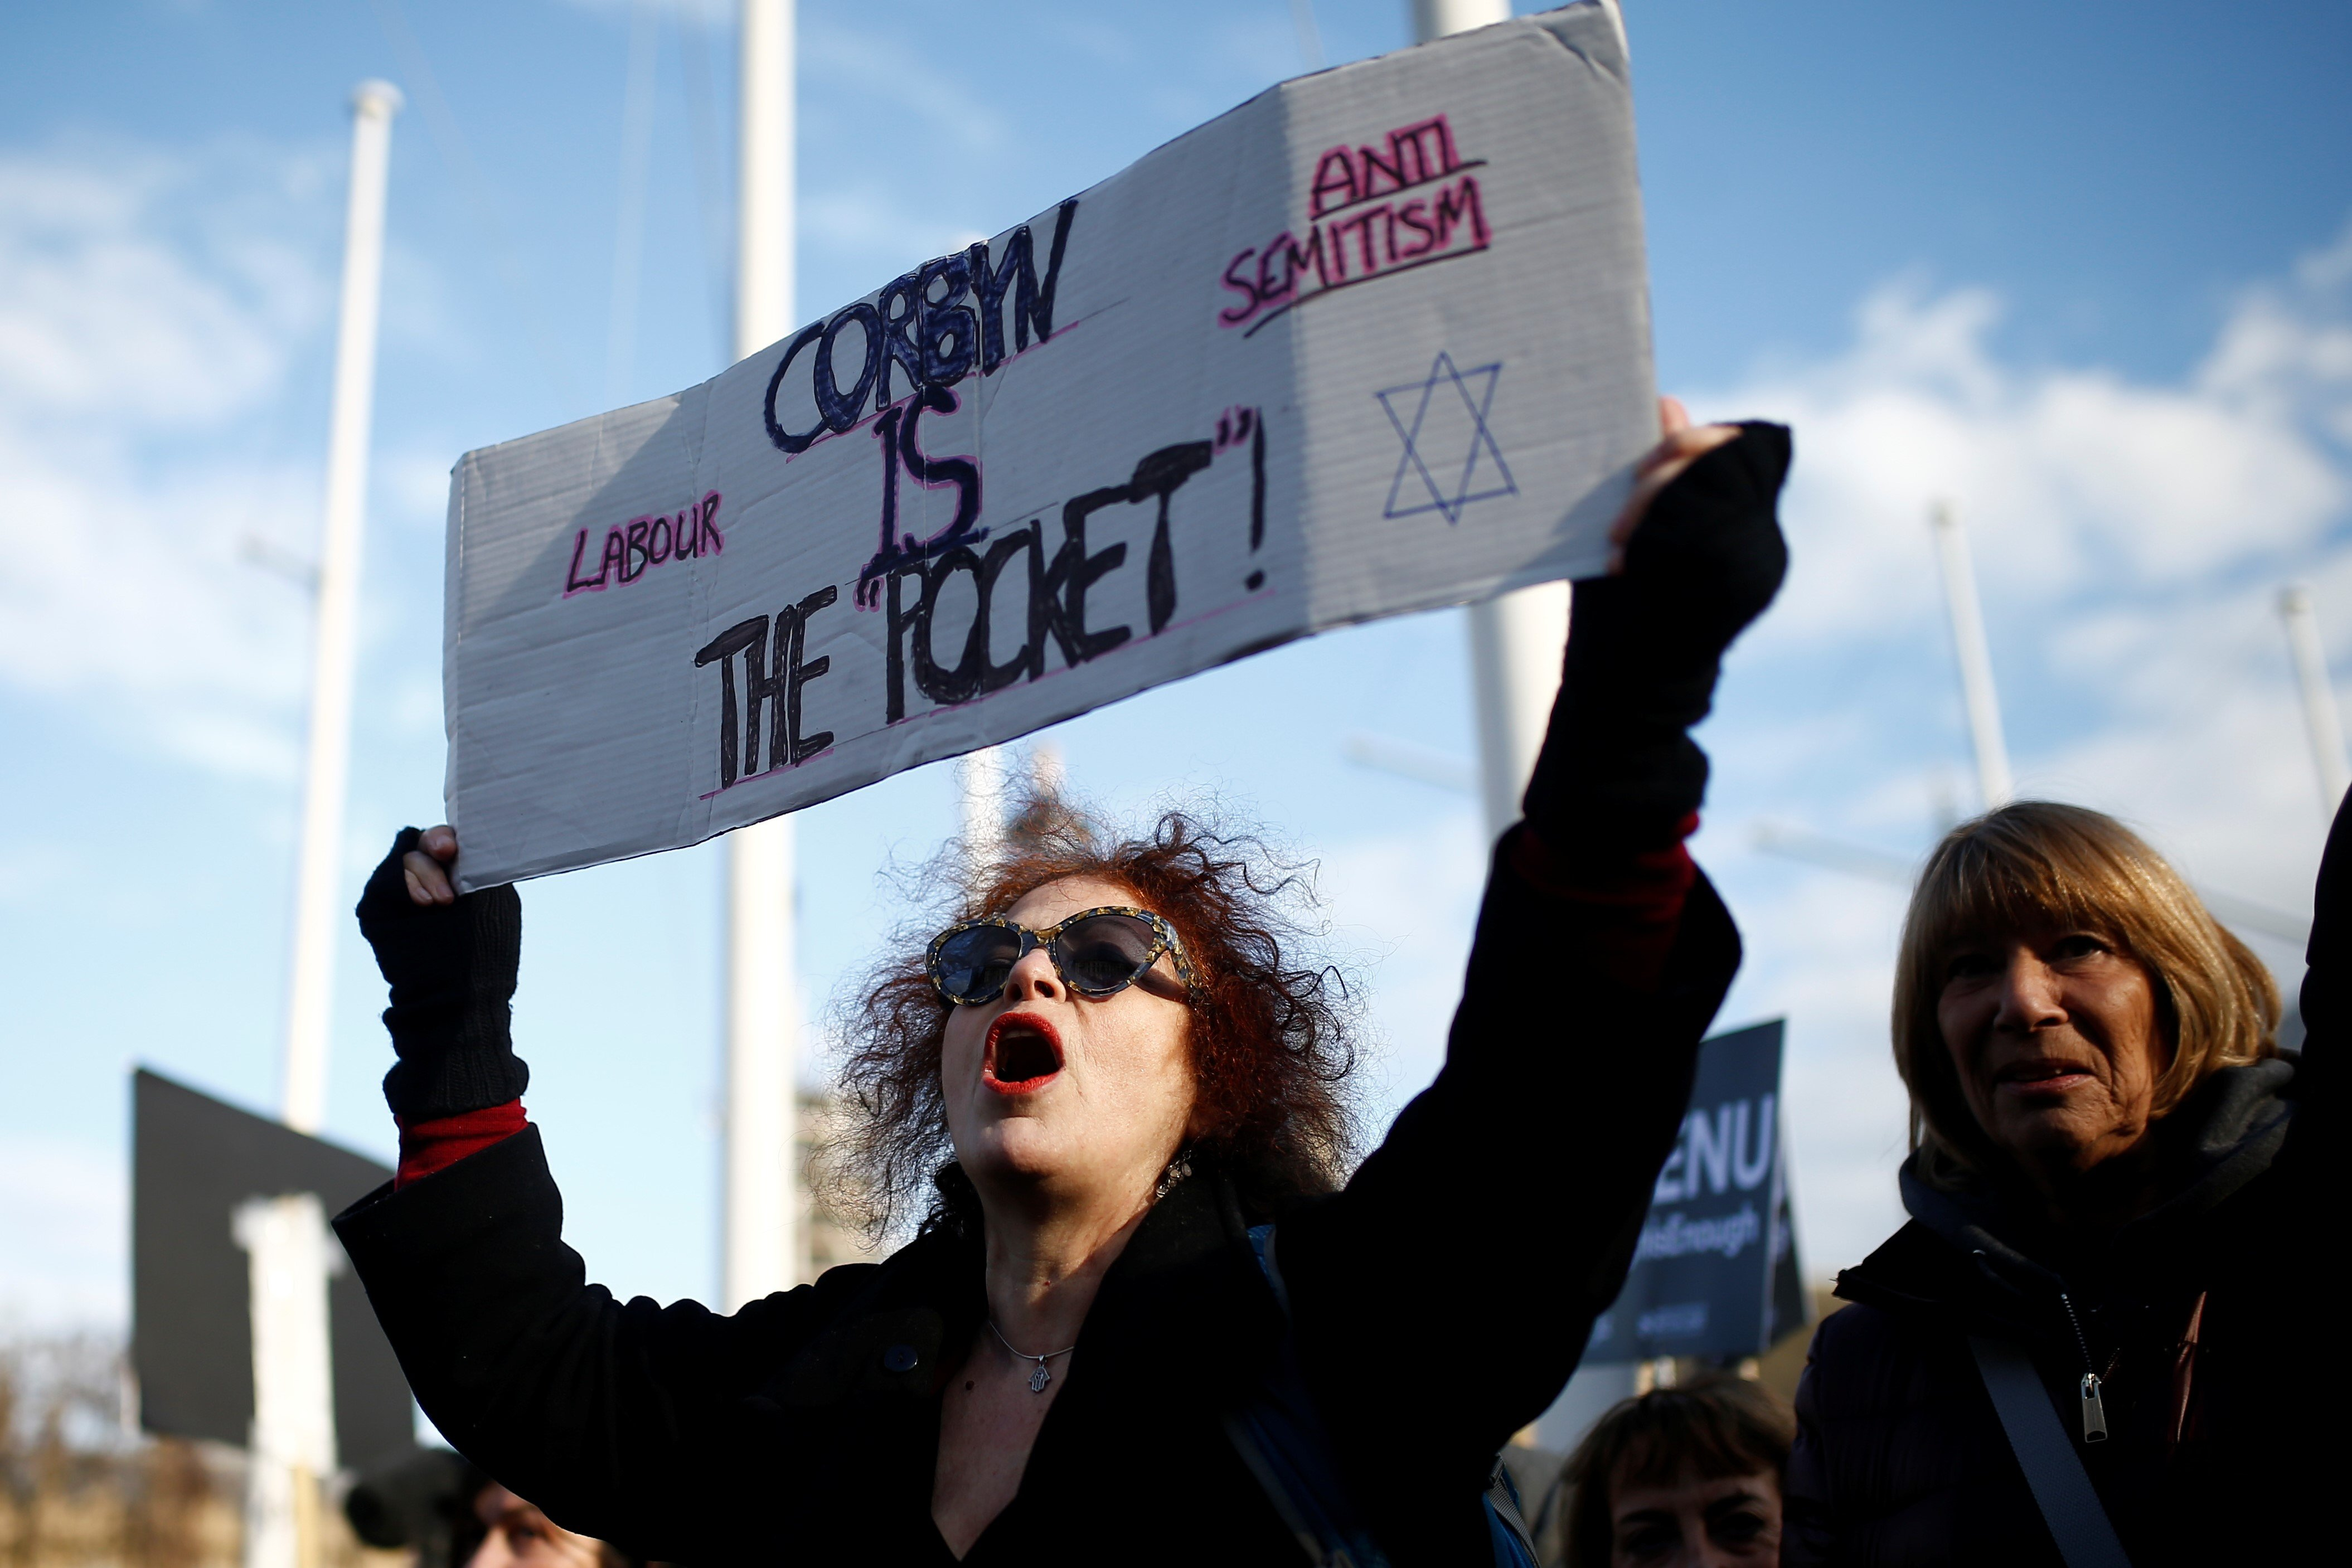 Protesters hold placards and flags during a demonstration, organised by the British Board of Jewish Deputies for those who oppose anti-Semitism, in Parliament Square in London, Britain, March 26, 2018